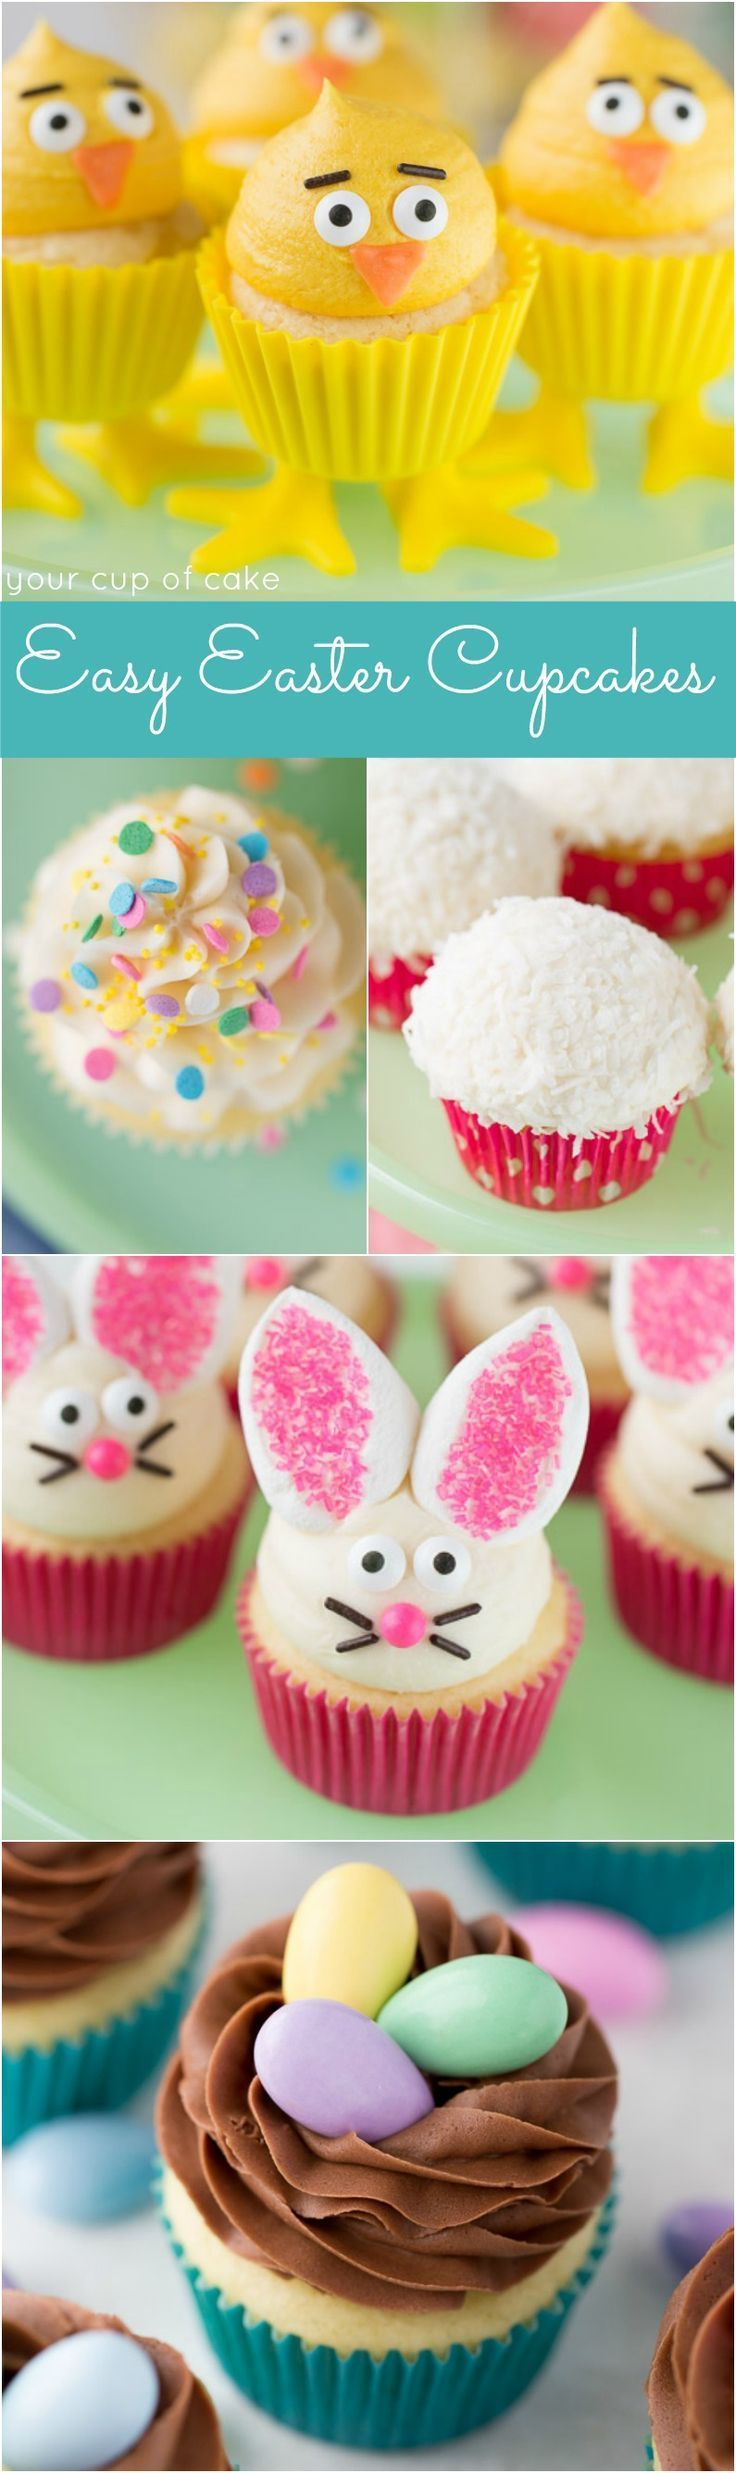 Easy Easter Cupcake Decorating Ideas - perfect for a party!